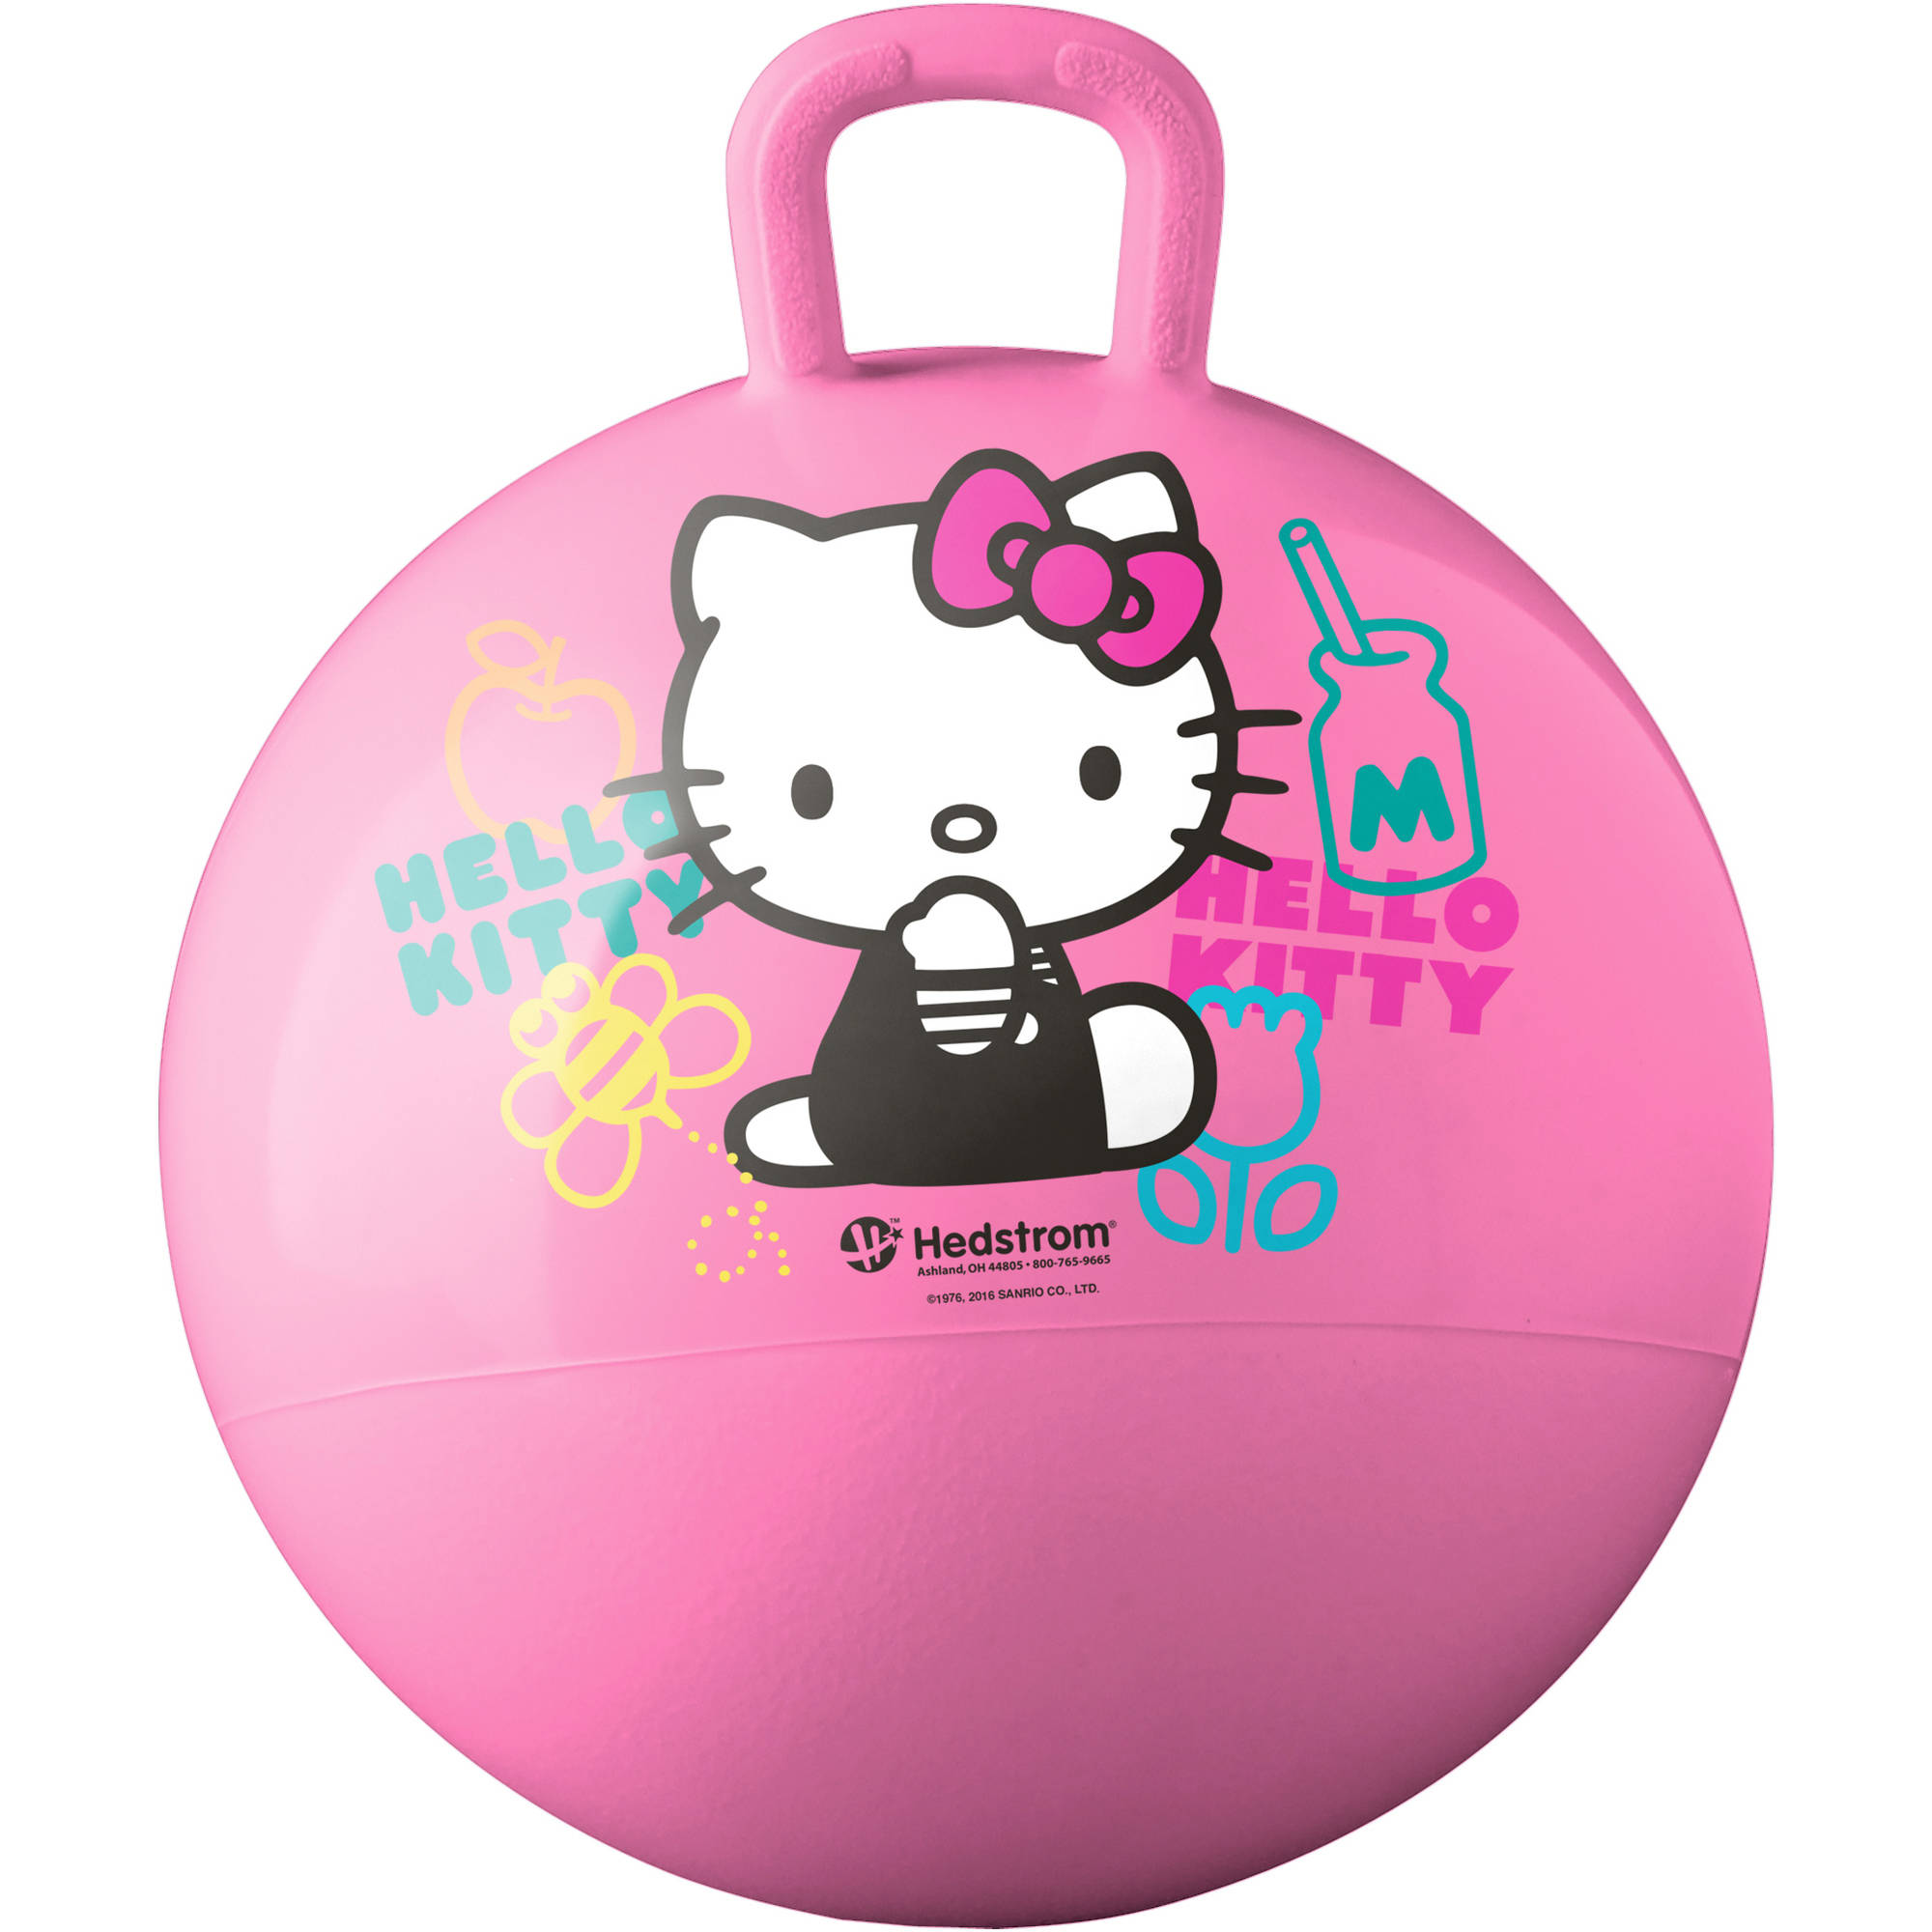 Hedstrom Hello Kitty Hopper by